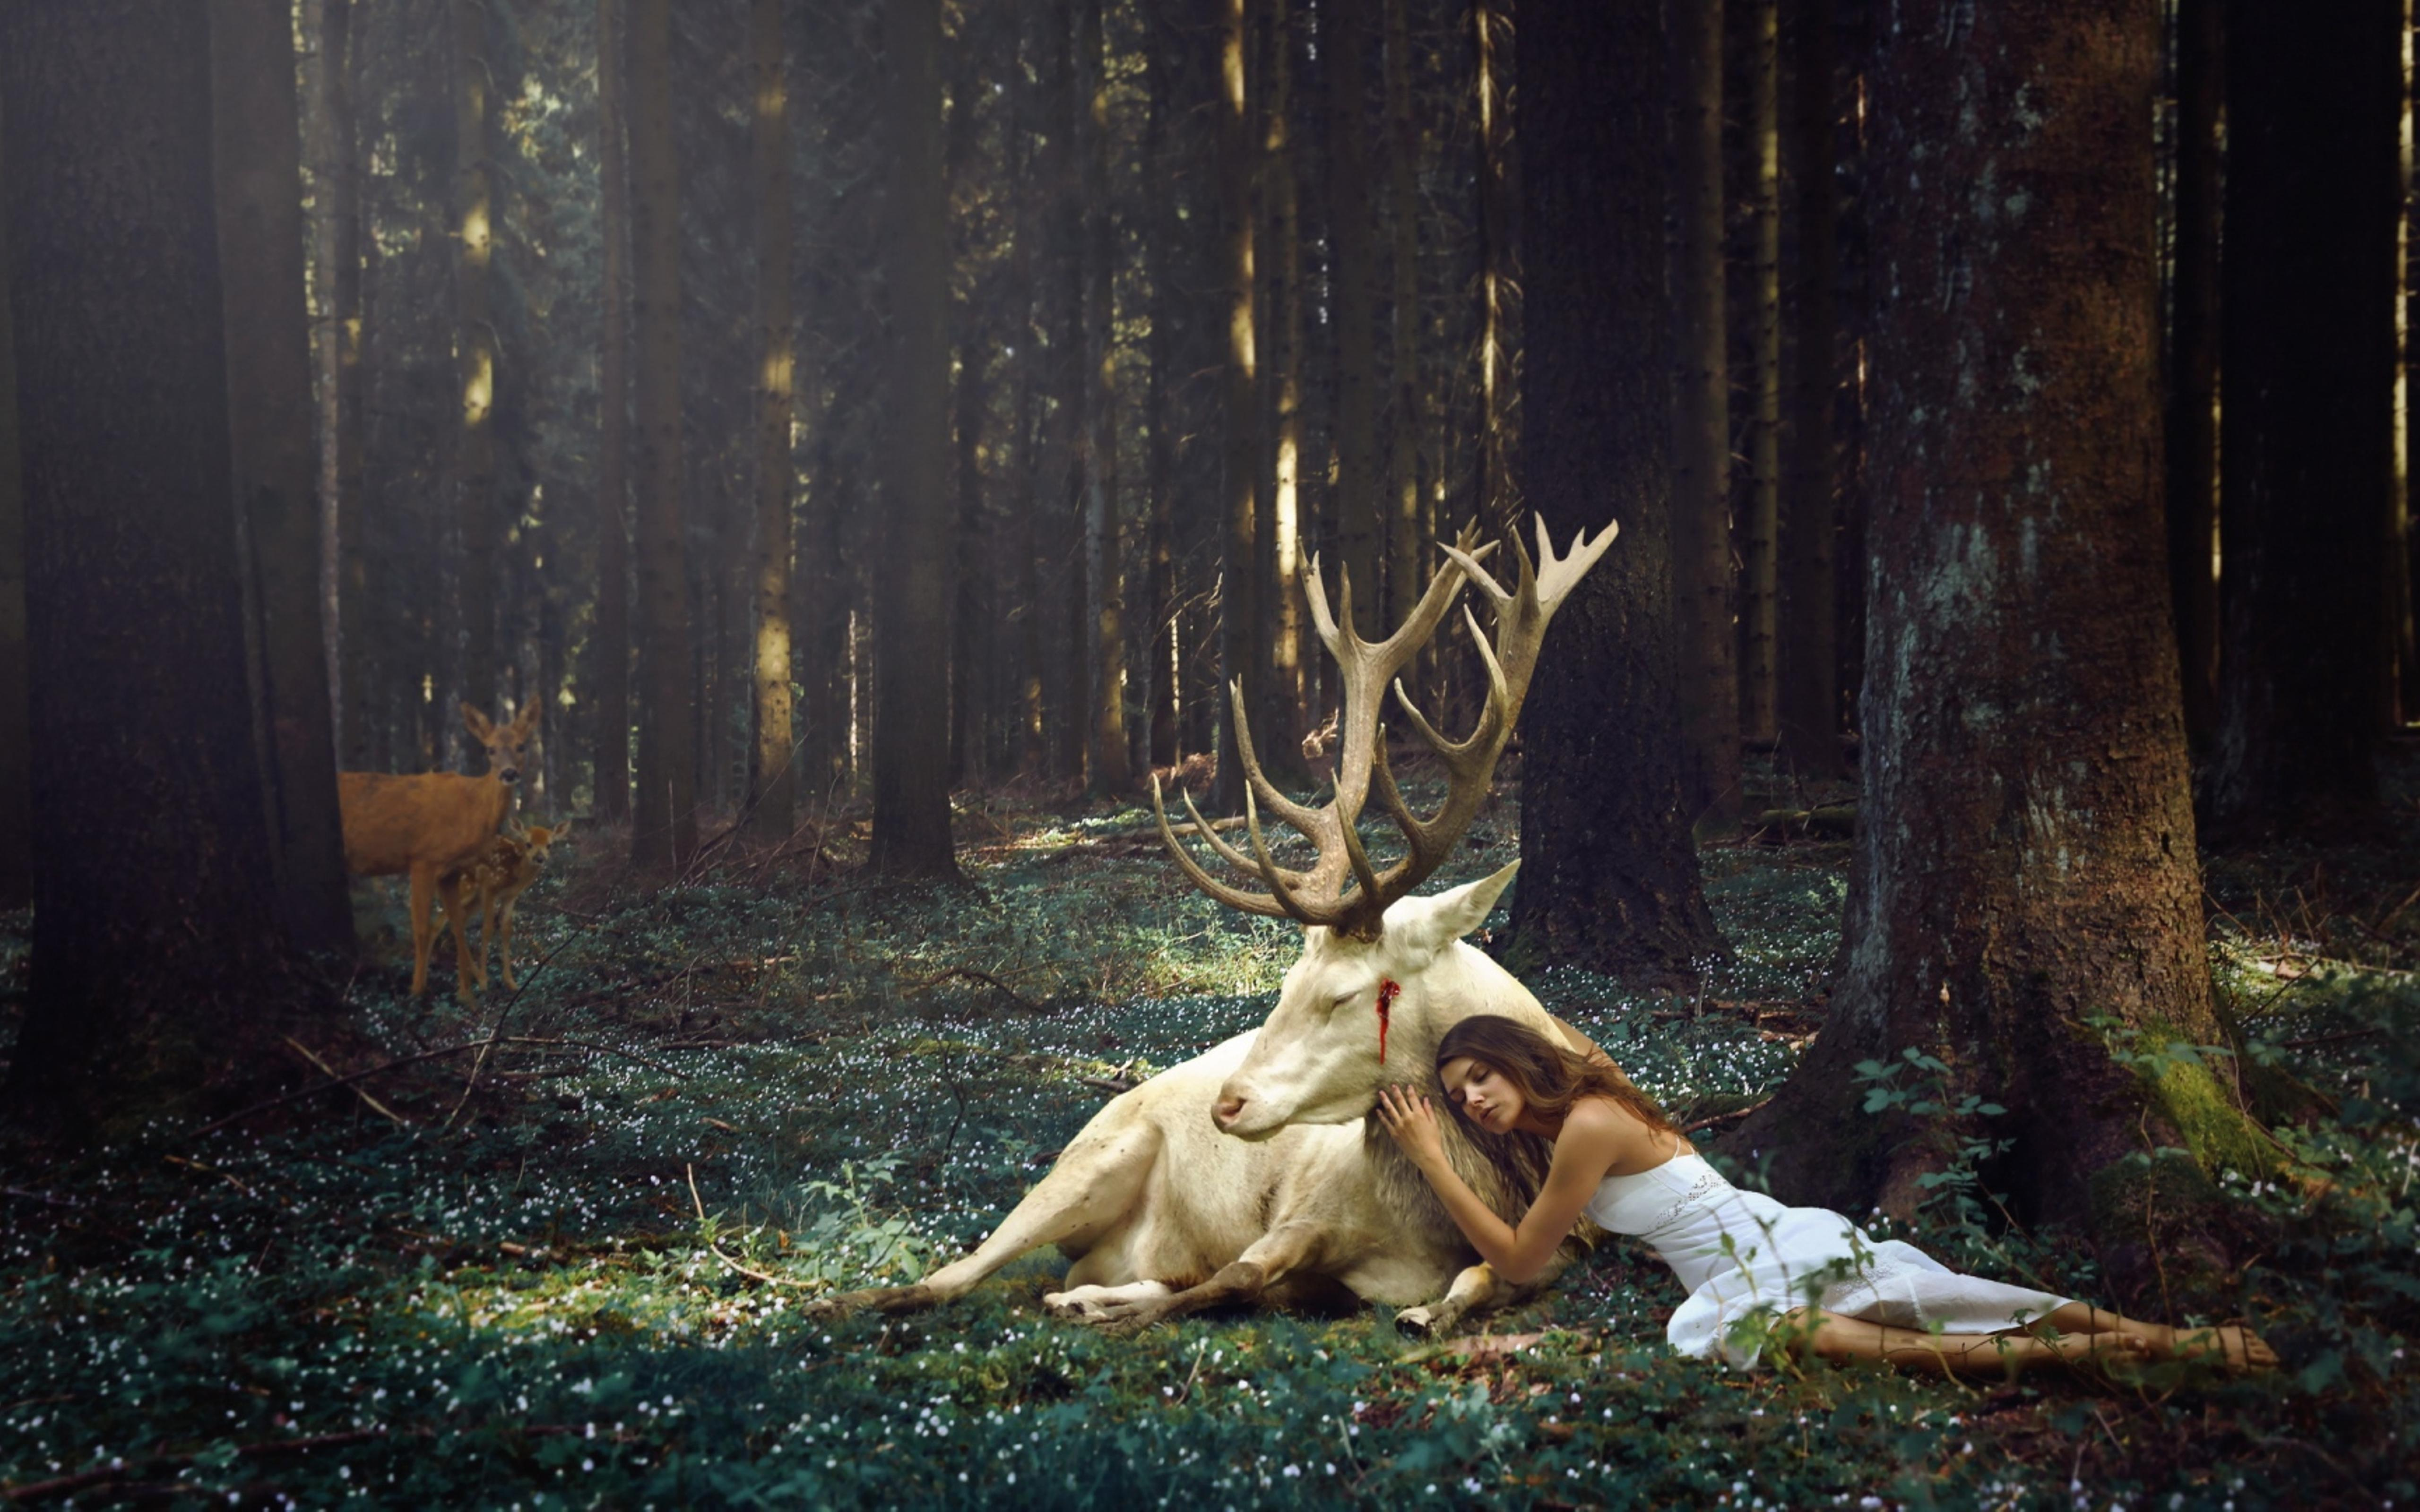 Simple Wallpaper Forest Girl - a-girl-beside-a-white-deer-in-the-forest-5120x3200  2018_981375 .jpg